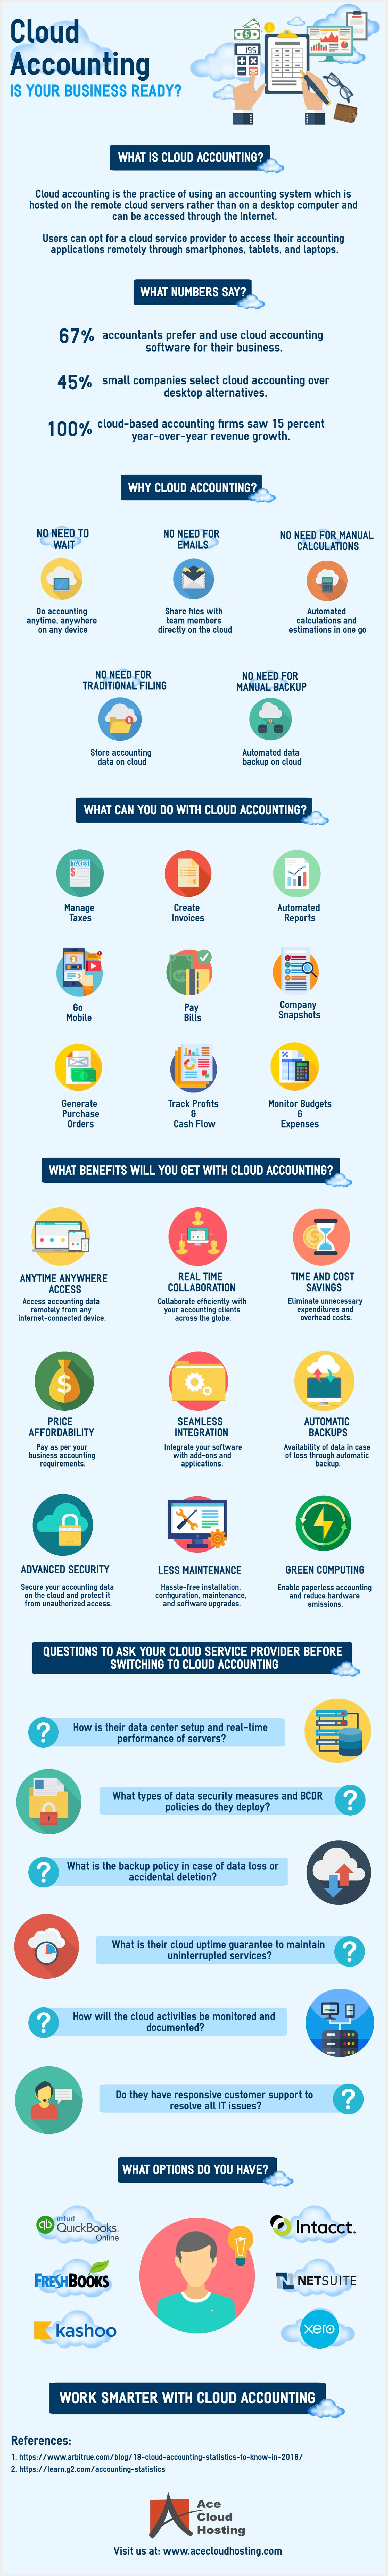 Cloud Accounting – Is Your Business Ready? Infographic